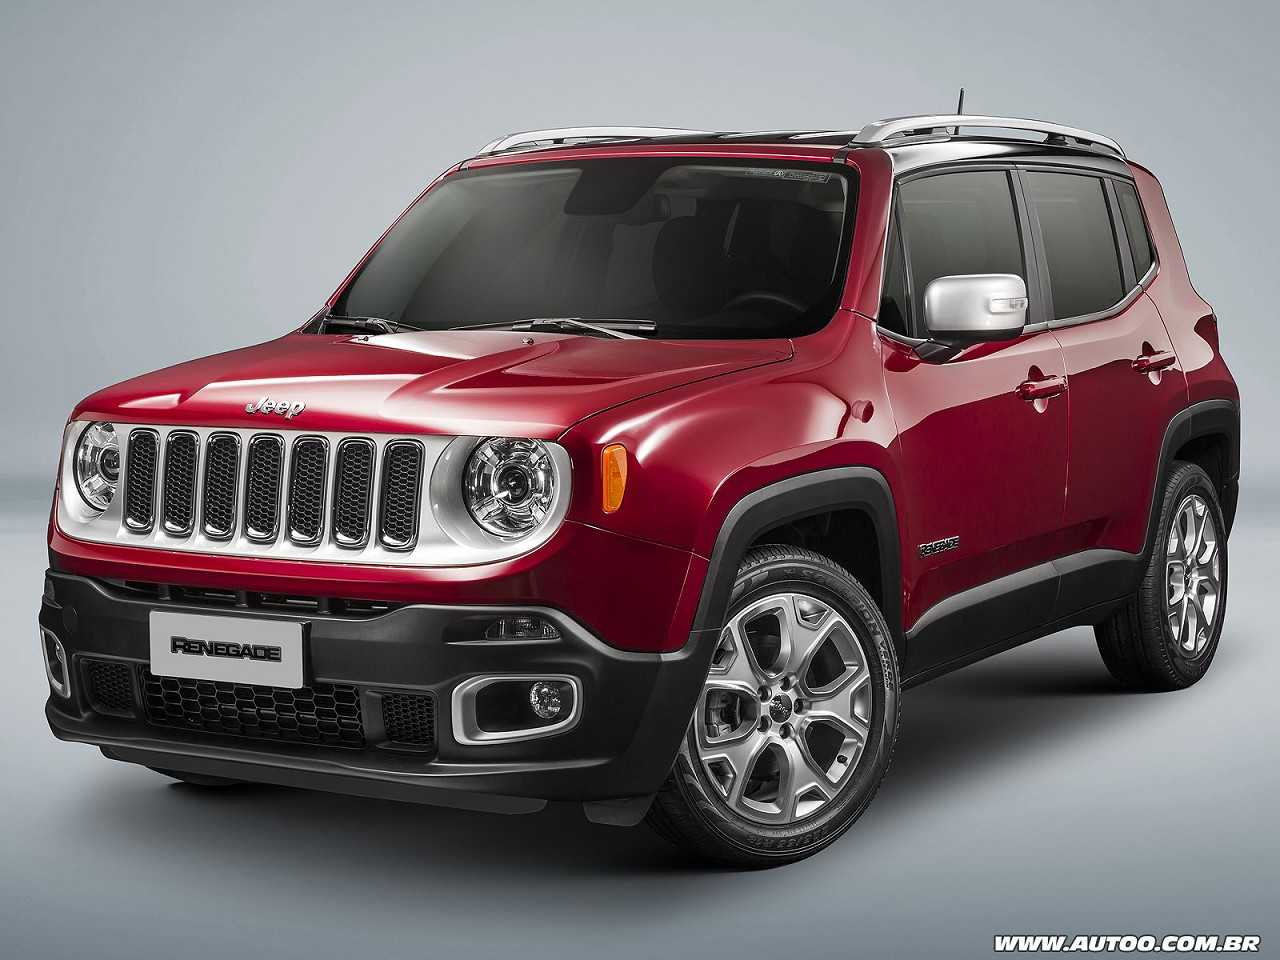 Jeep Renegade 2017 - ângulo frontal